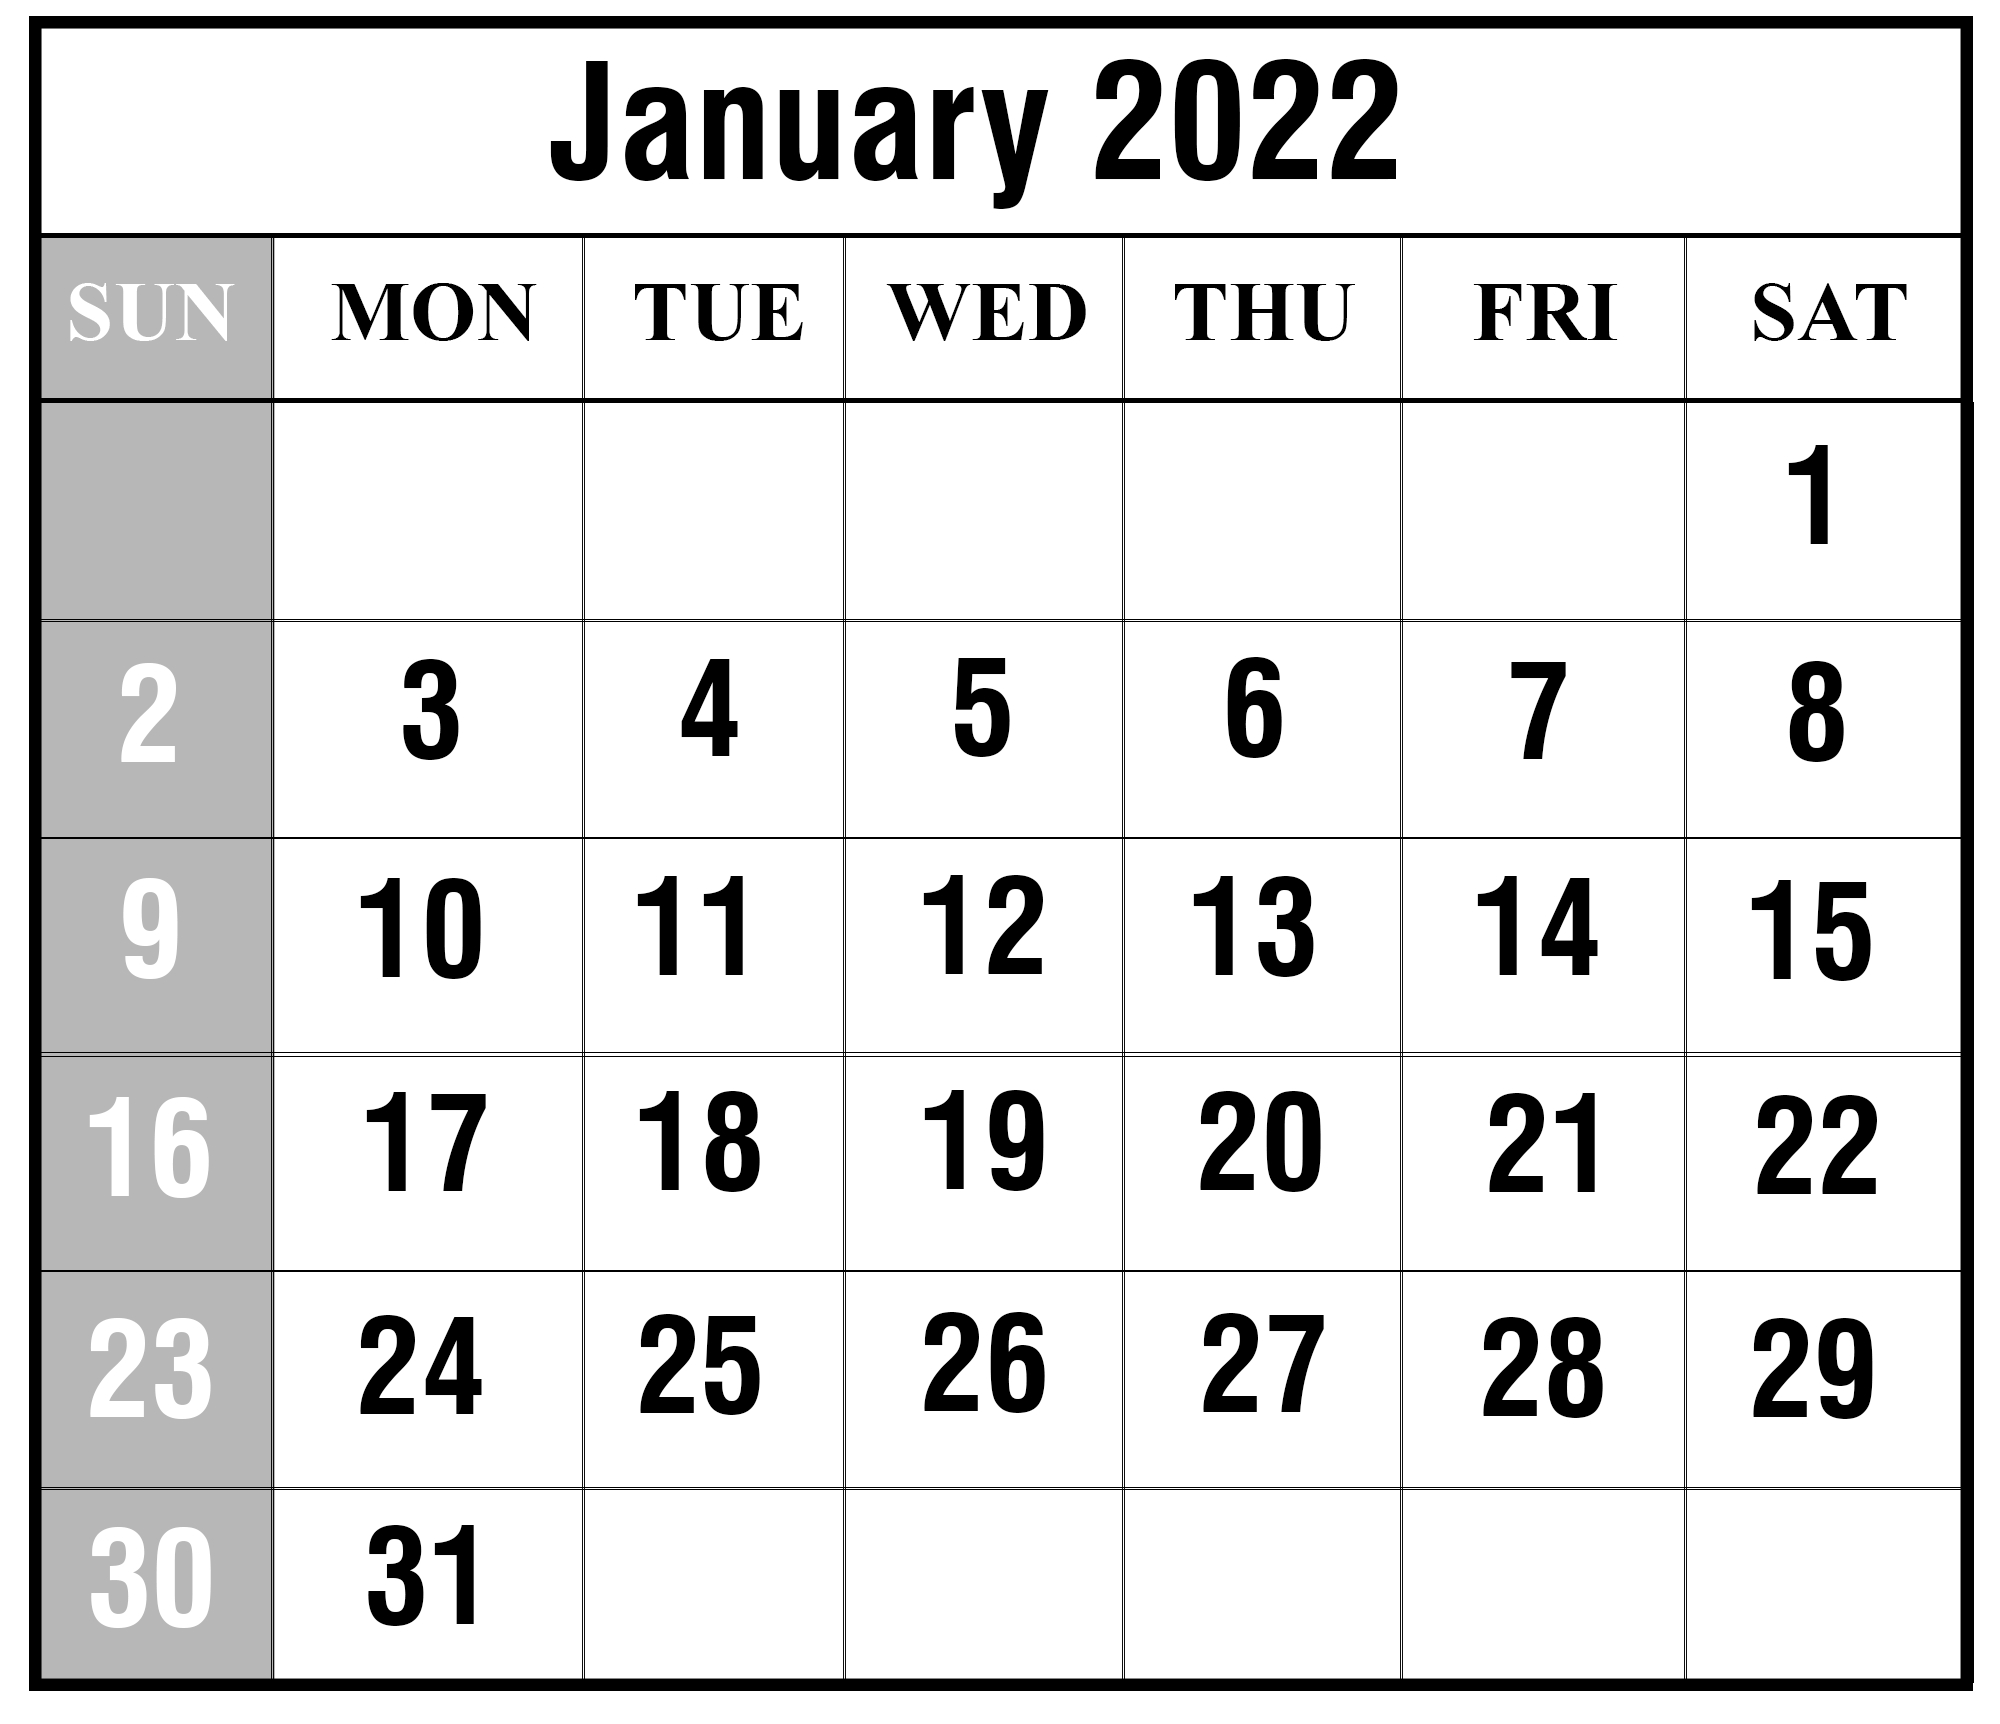 Free January 2022 Printable Calendar Template In Pdf, Excel-2022 Calendar Printable With Holidays Malaysia